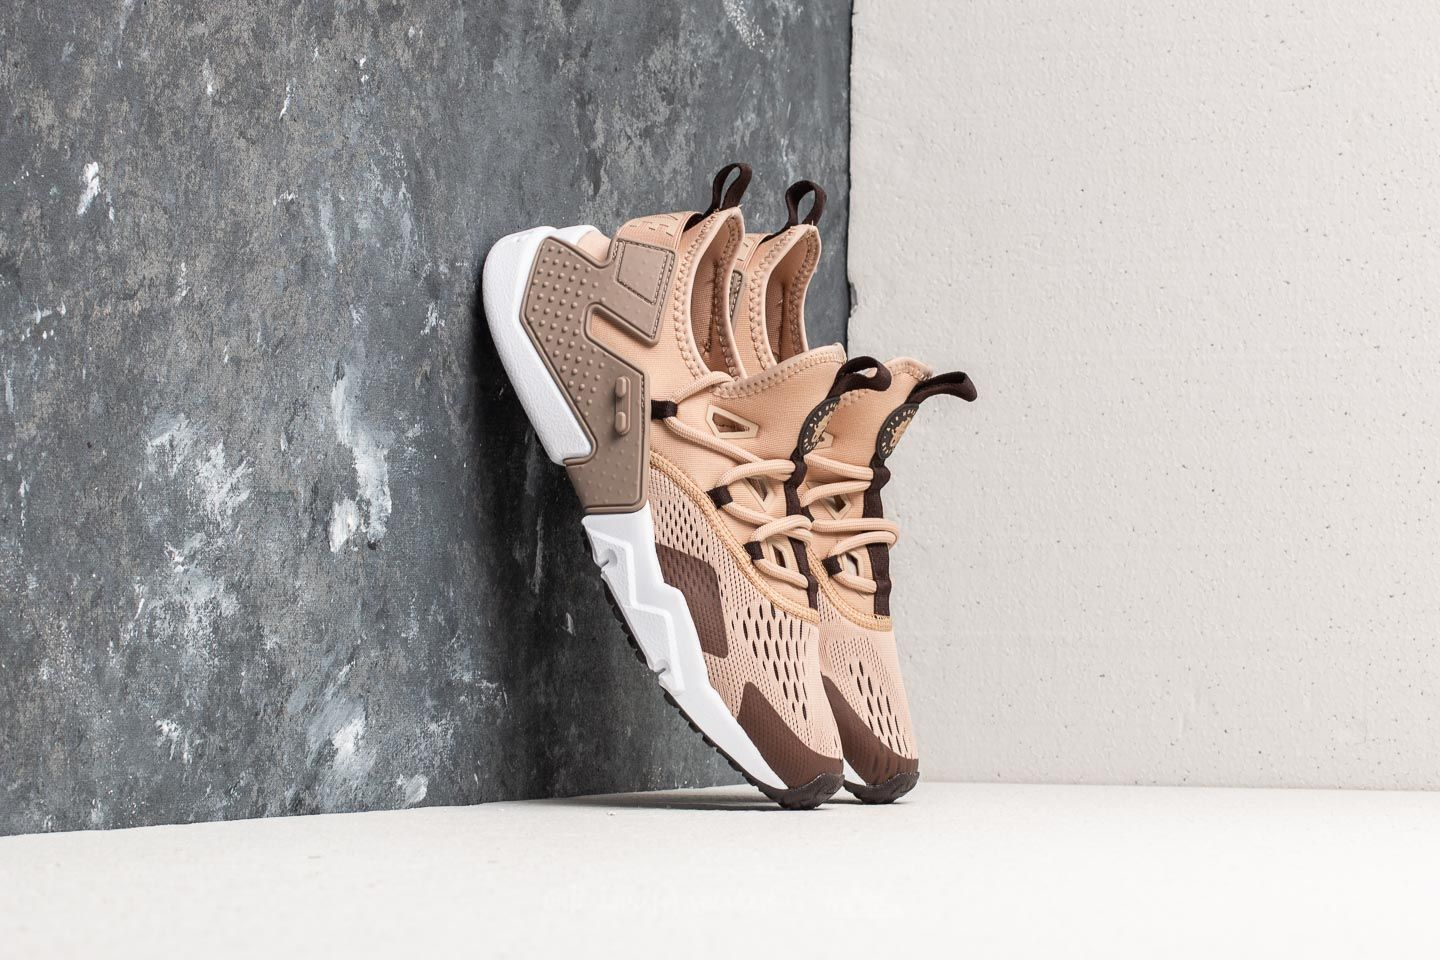 sale retailer 1f7a5 3f61e Nike Air Huarache Drift Breathe Sand  Velvet Brown-Sepia Stone at a great  price